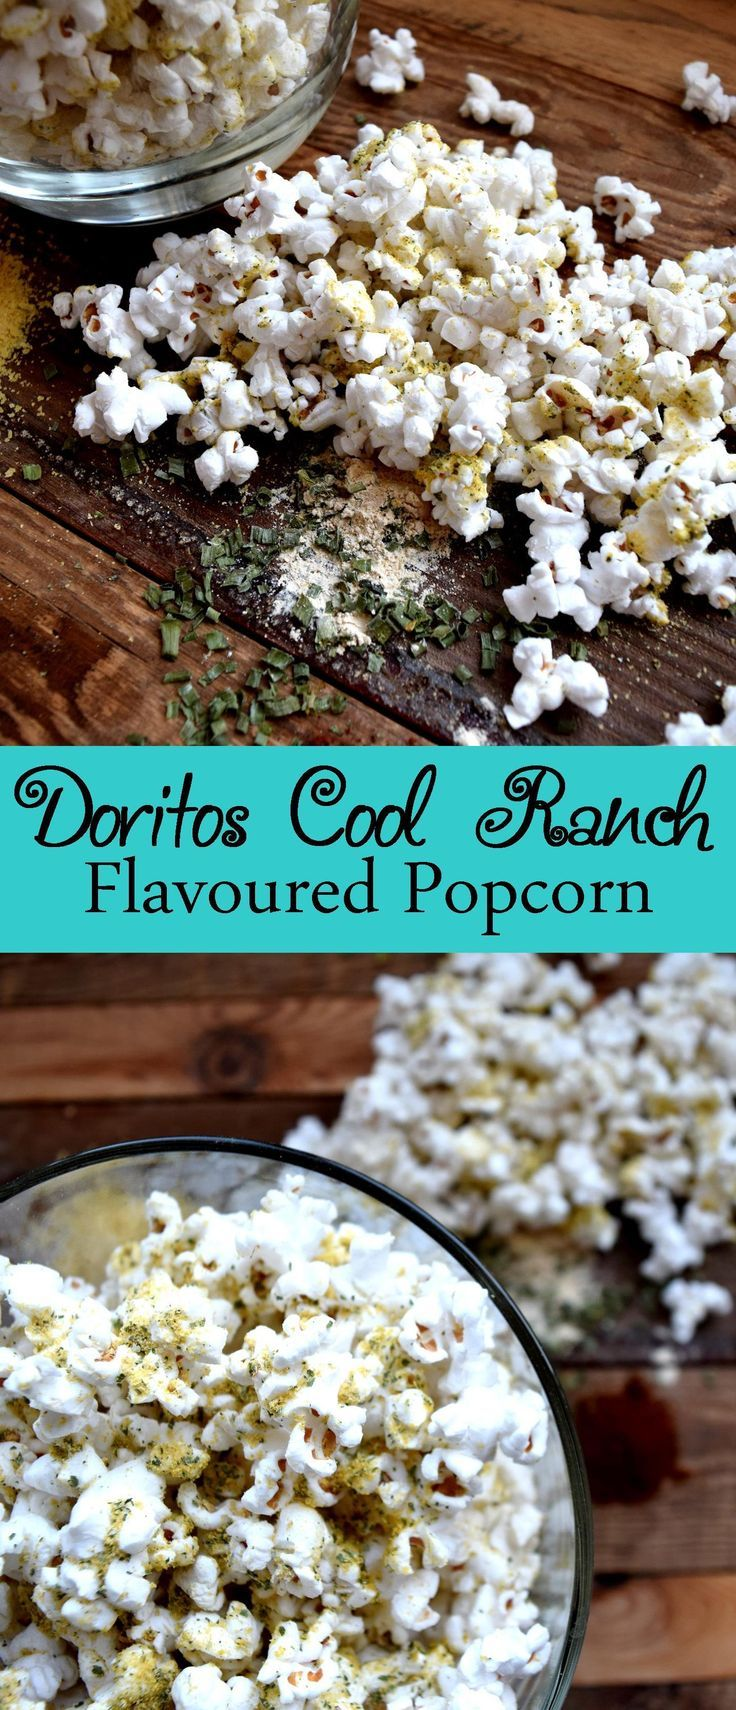 Doritos Cool Ranch Flavoured Popcorn! This is a good and healthier alternative to your usual Doritos snack!